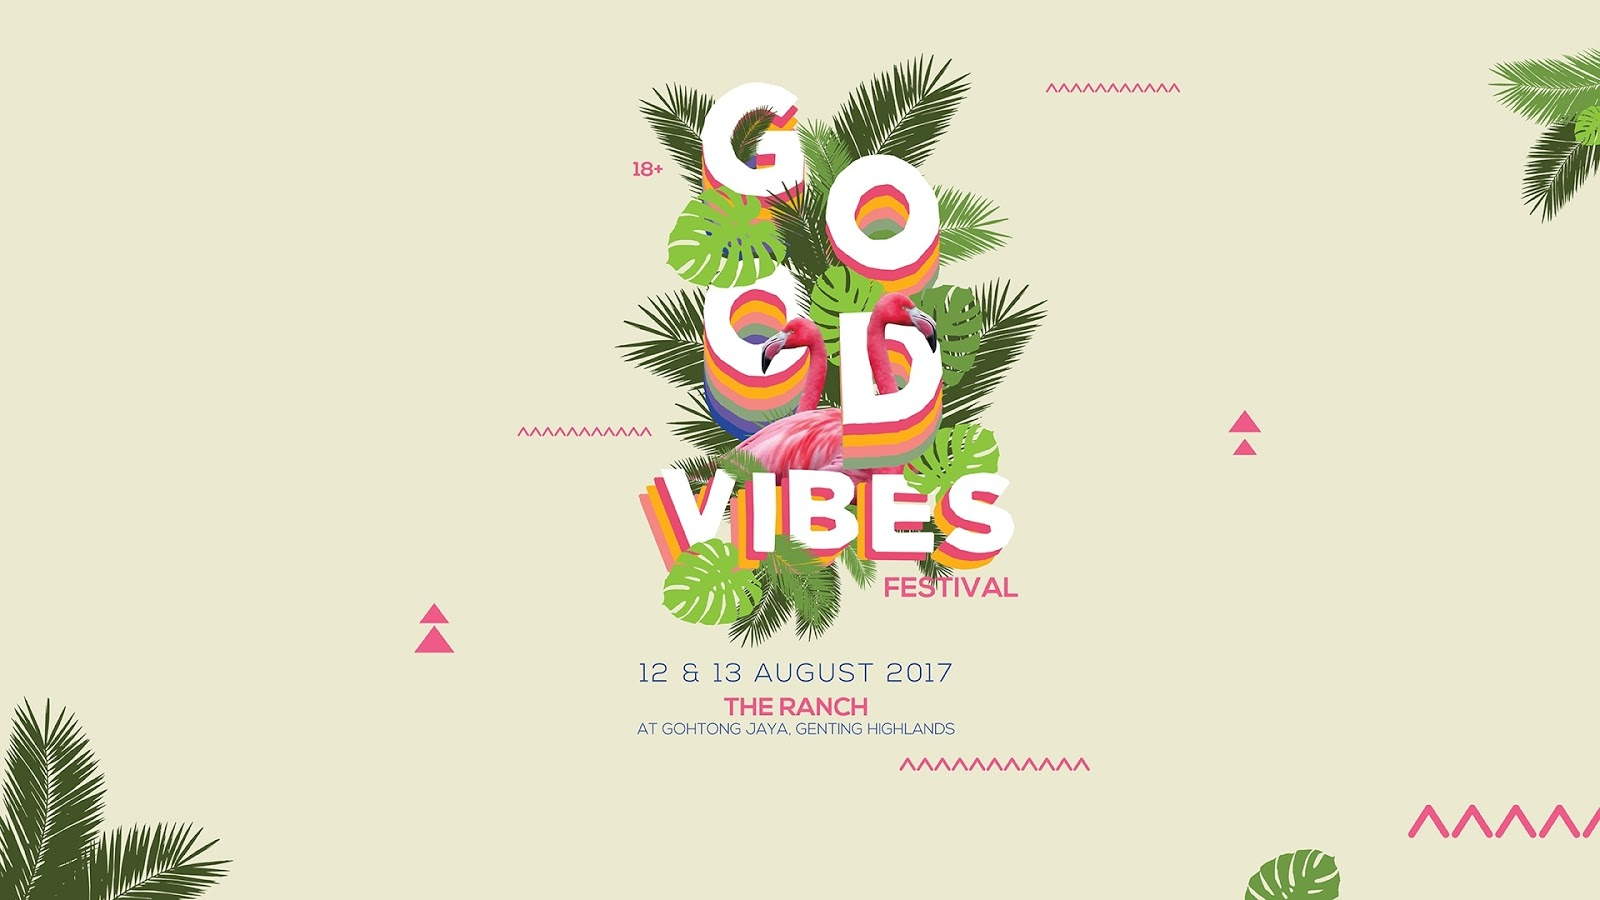 Good Vibes Festival returns to The Ranch in August